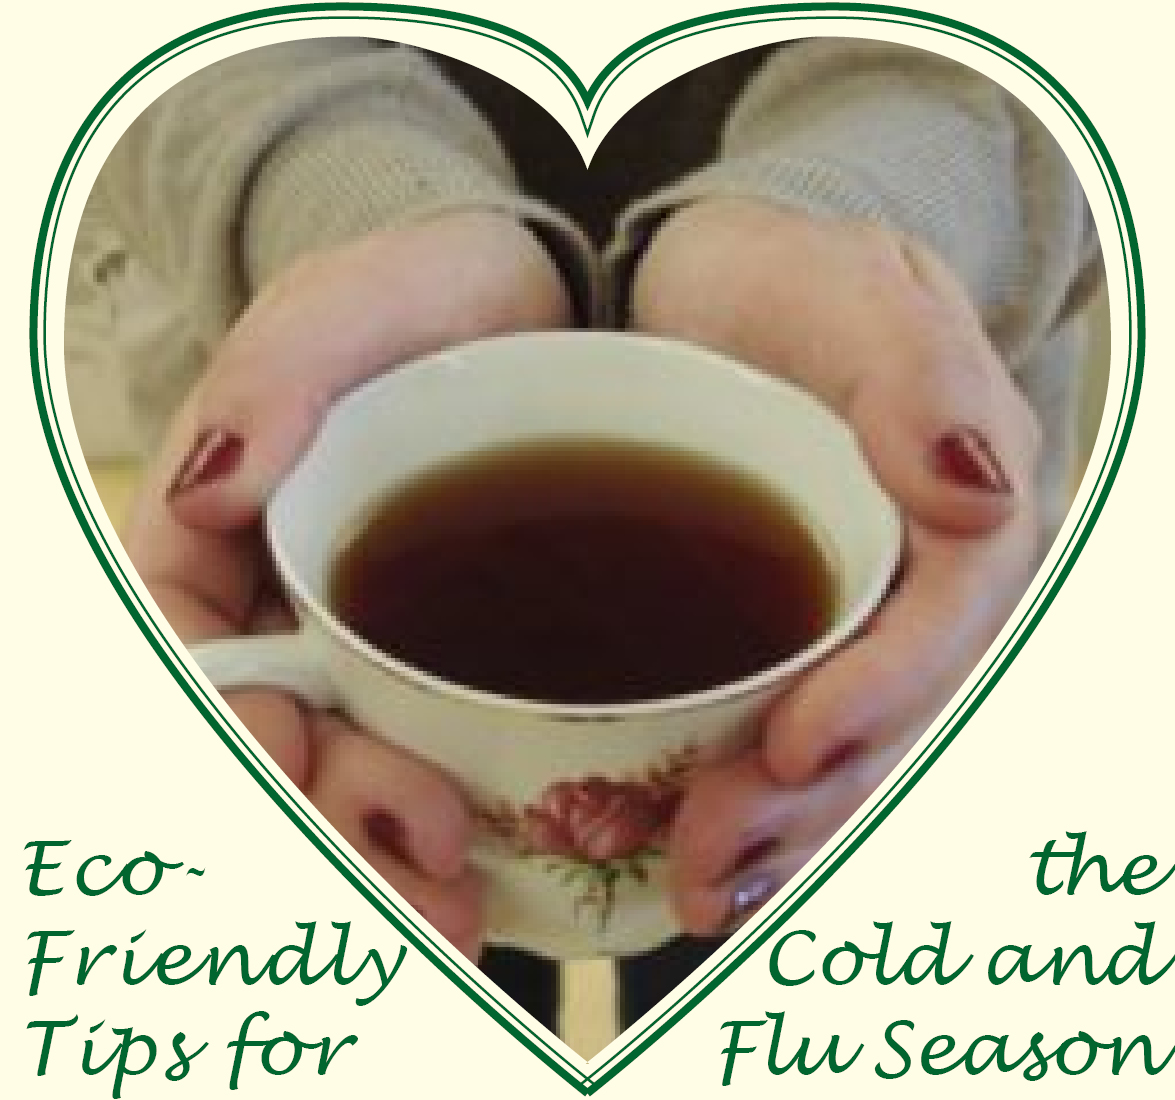 Eco-Friendly Tips for the Cold and Flu Season